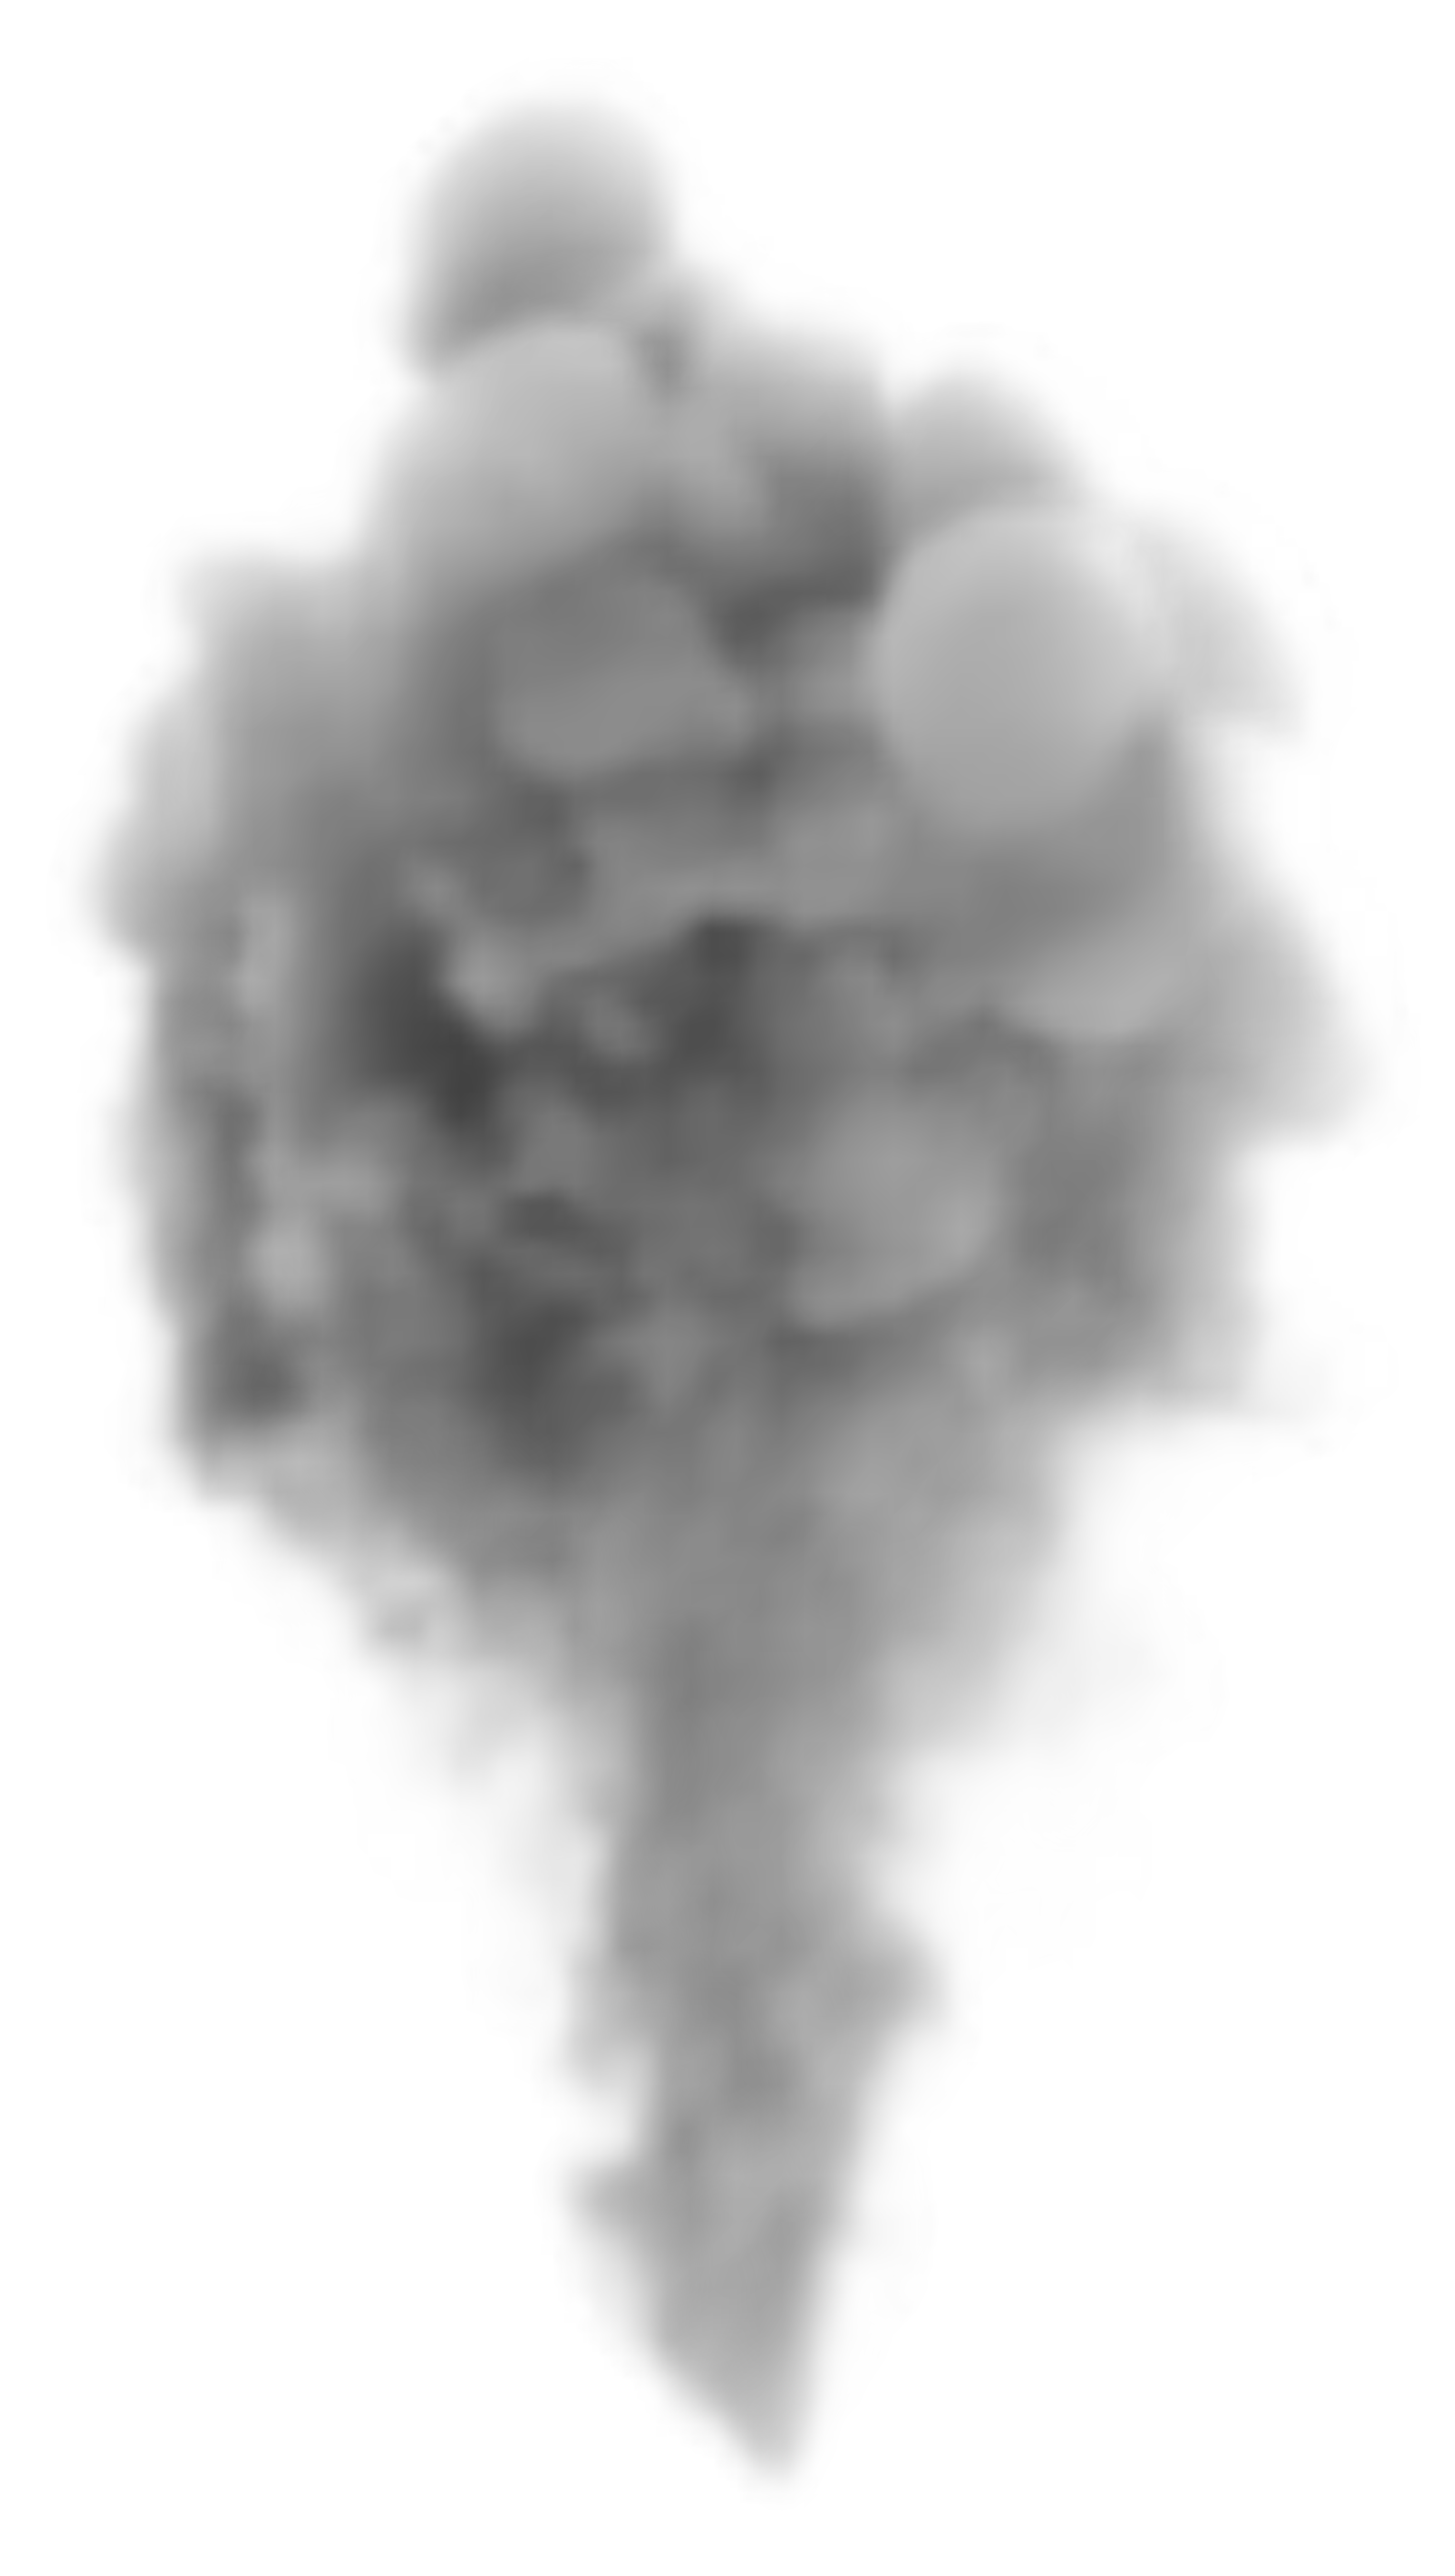 Smoke clipart #1, Download drawings